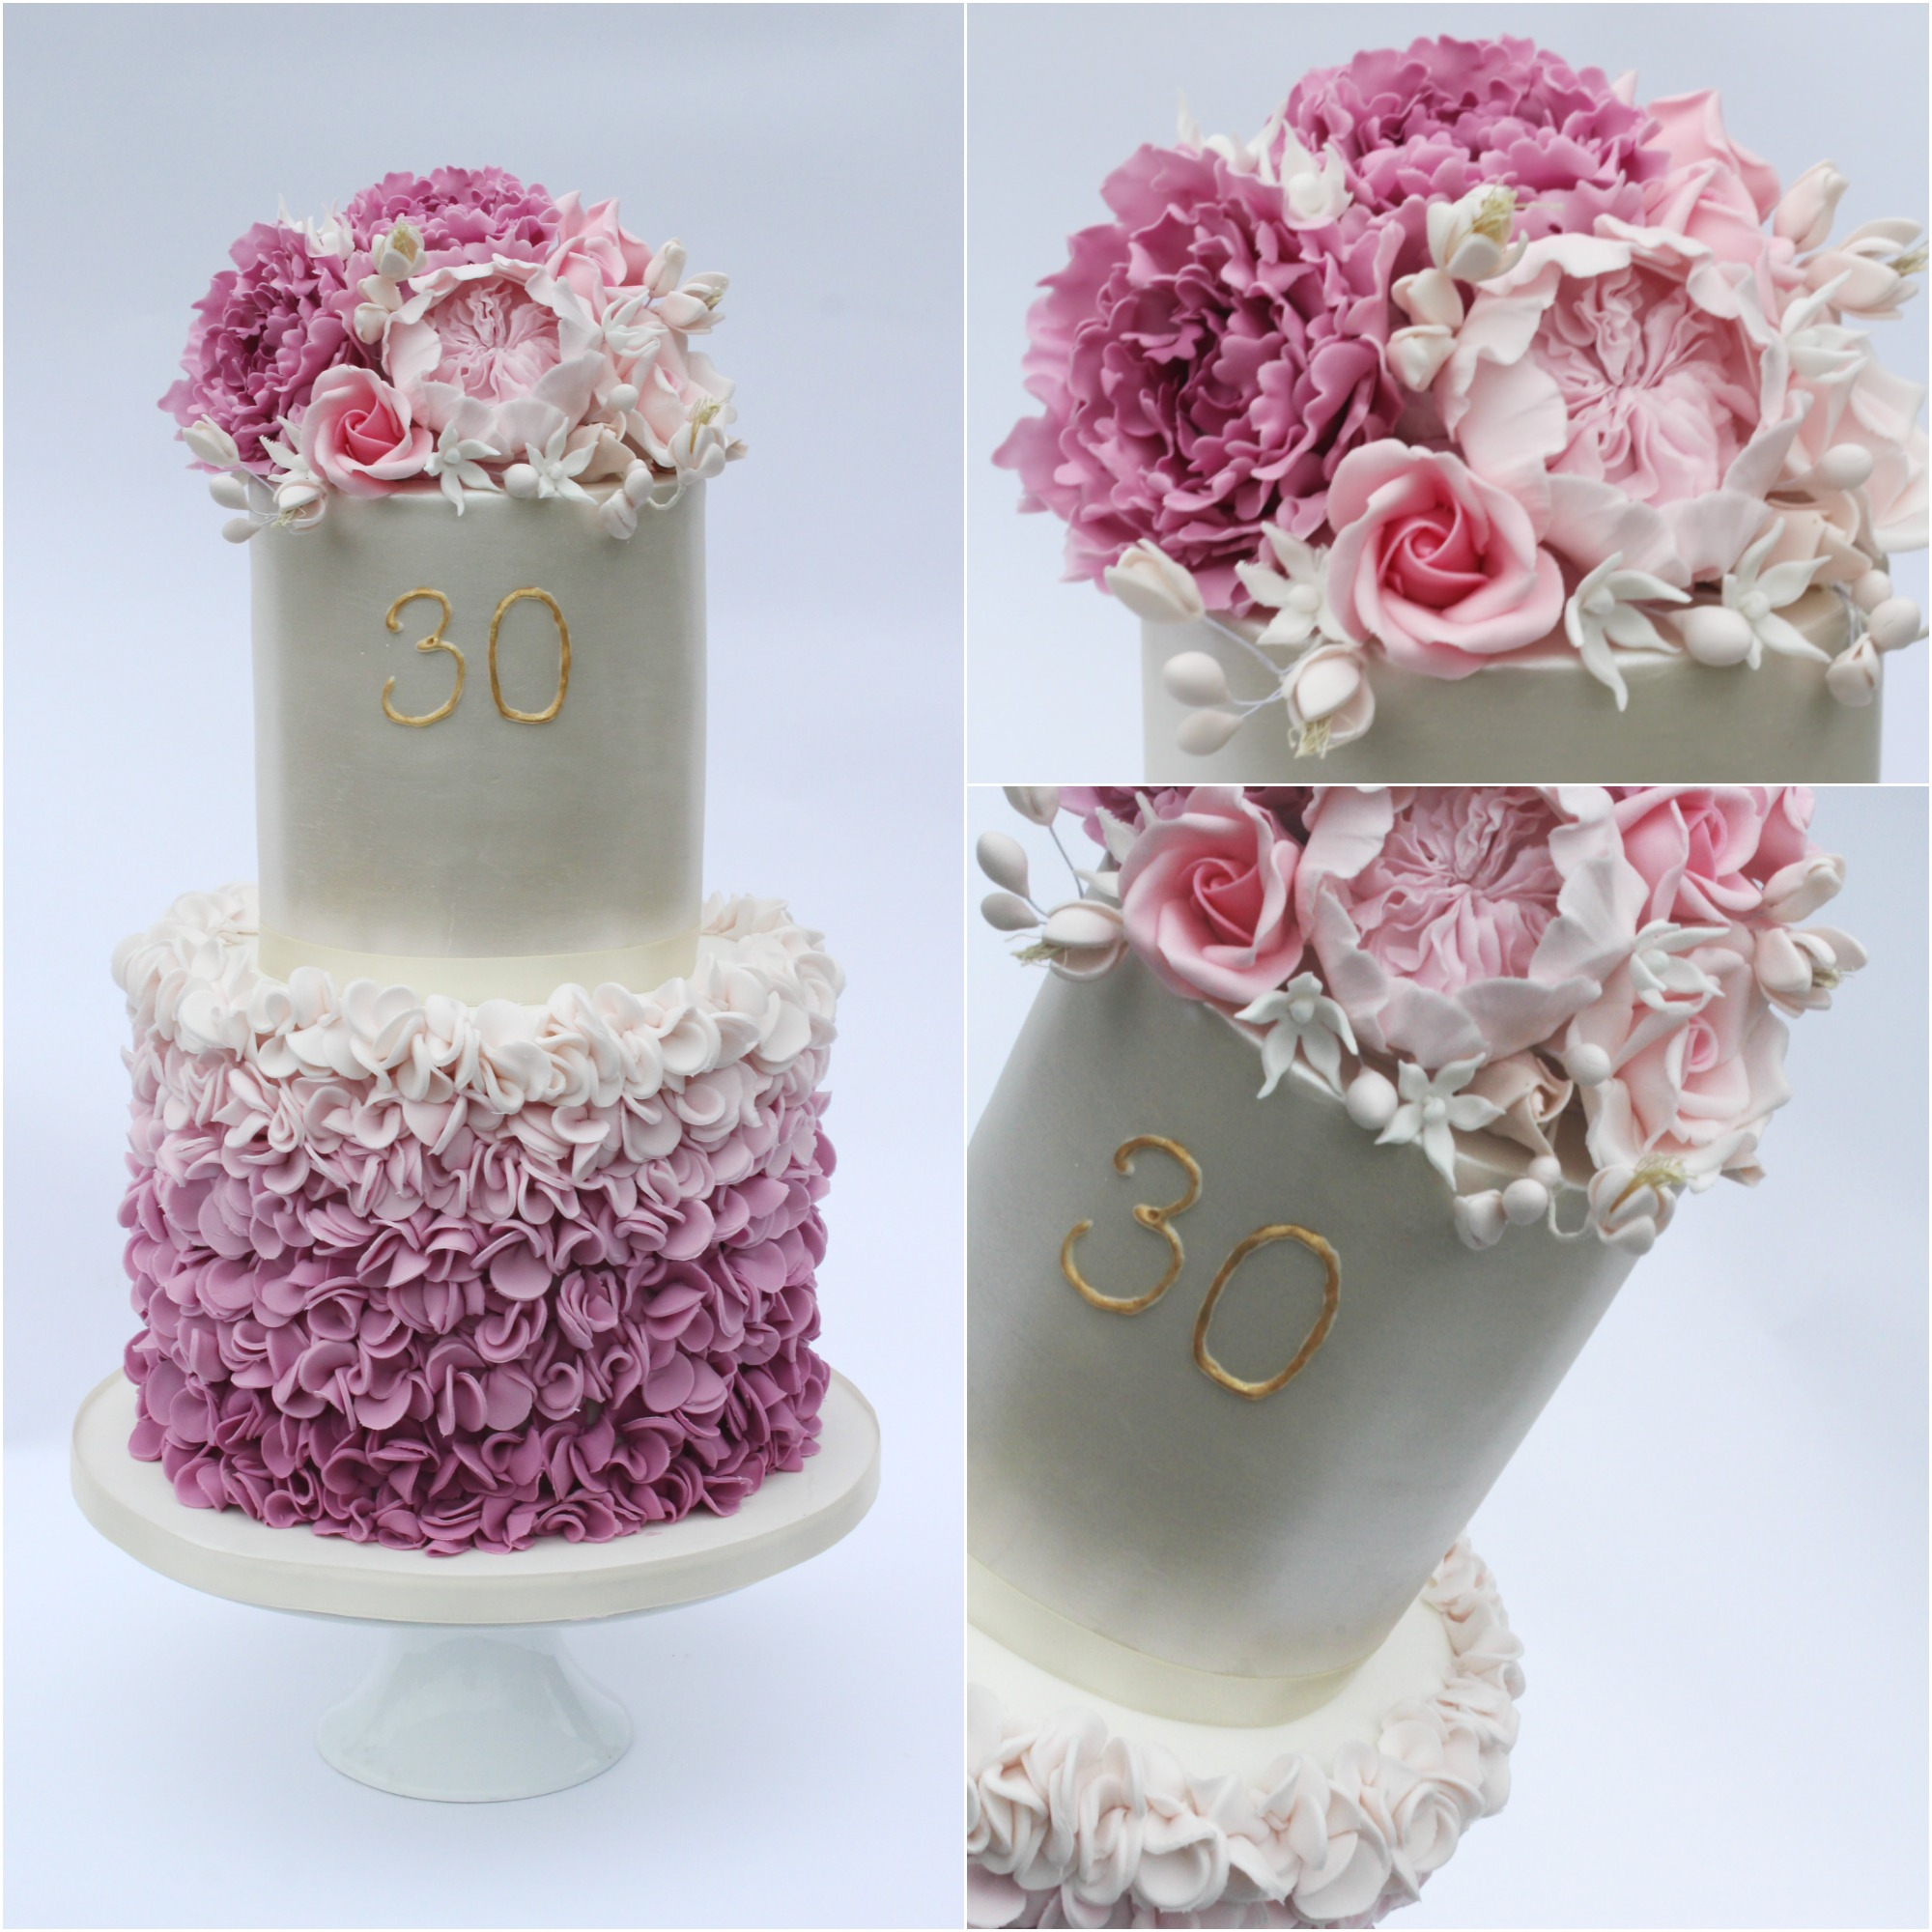 White and purple ombre birthday cake